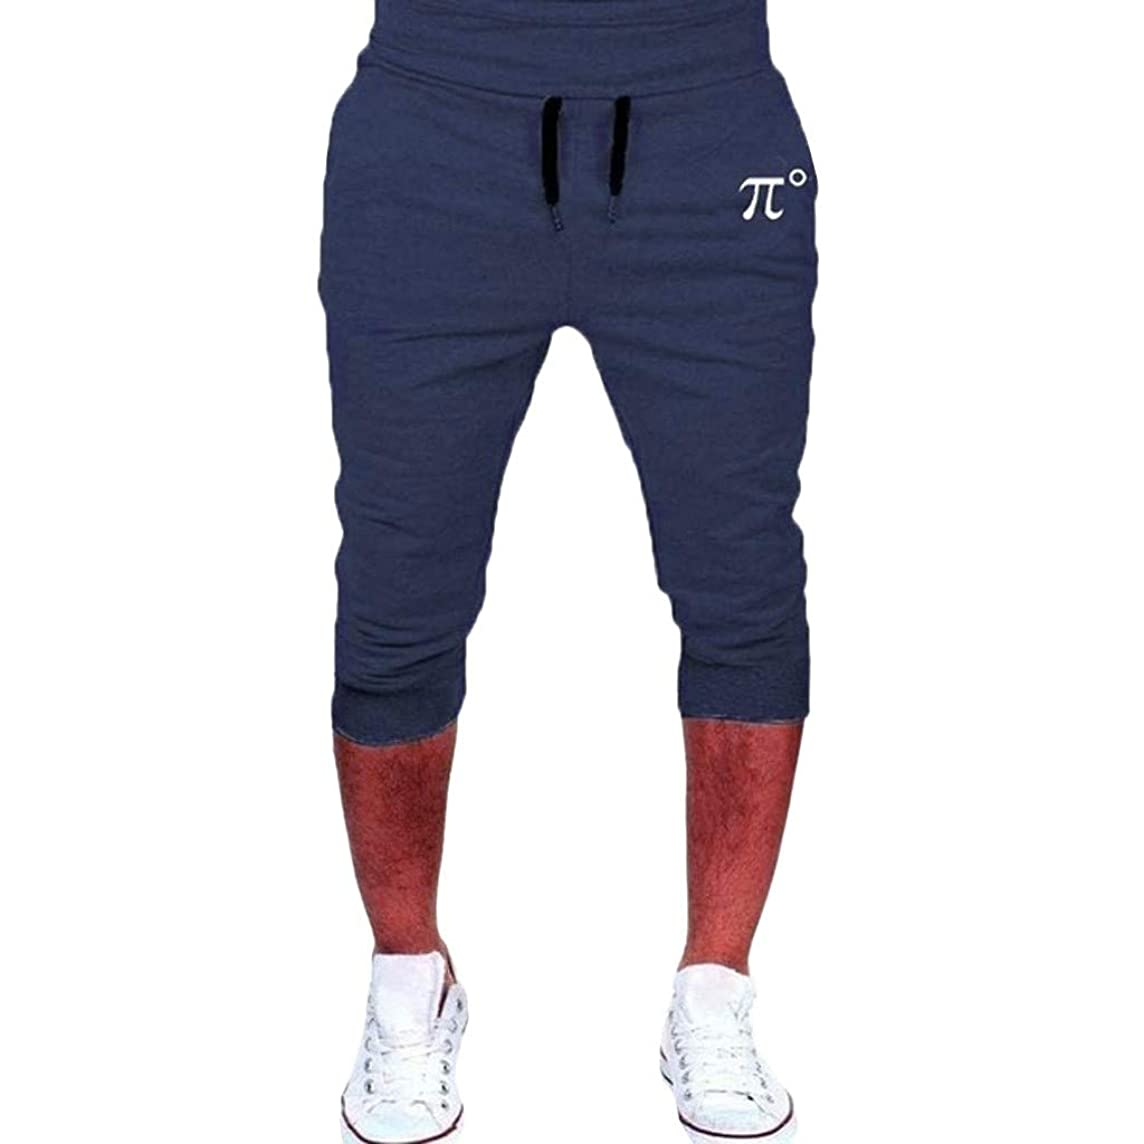 Snowlily Underwear,Men's Shorts Sports Running Hip Hop Trousers Casual Sports Cropped Pant